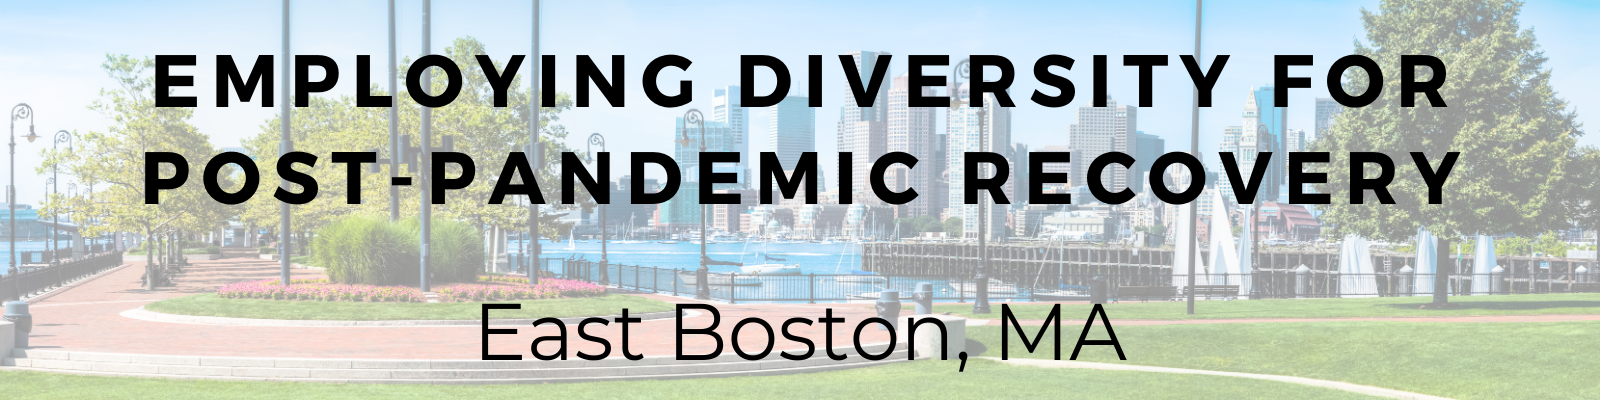 Synchronizing Millennials and Ethnic Diversity for Post-Pandemic Recovery: The Case of East Boston